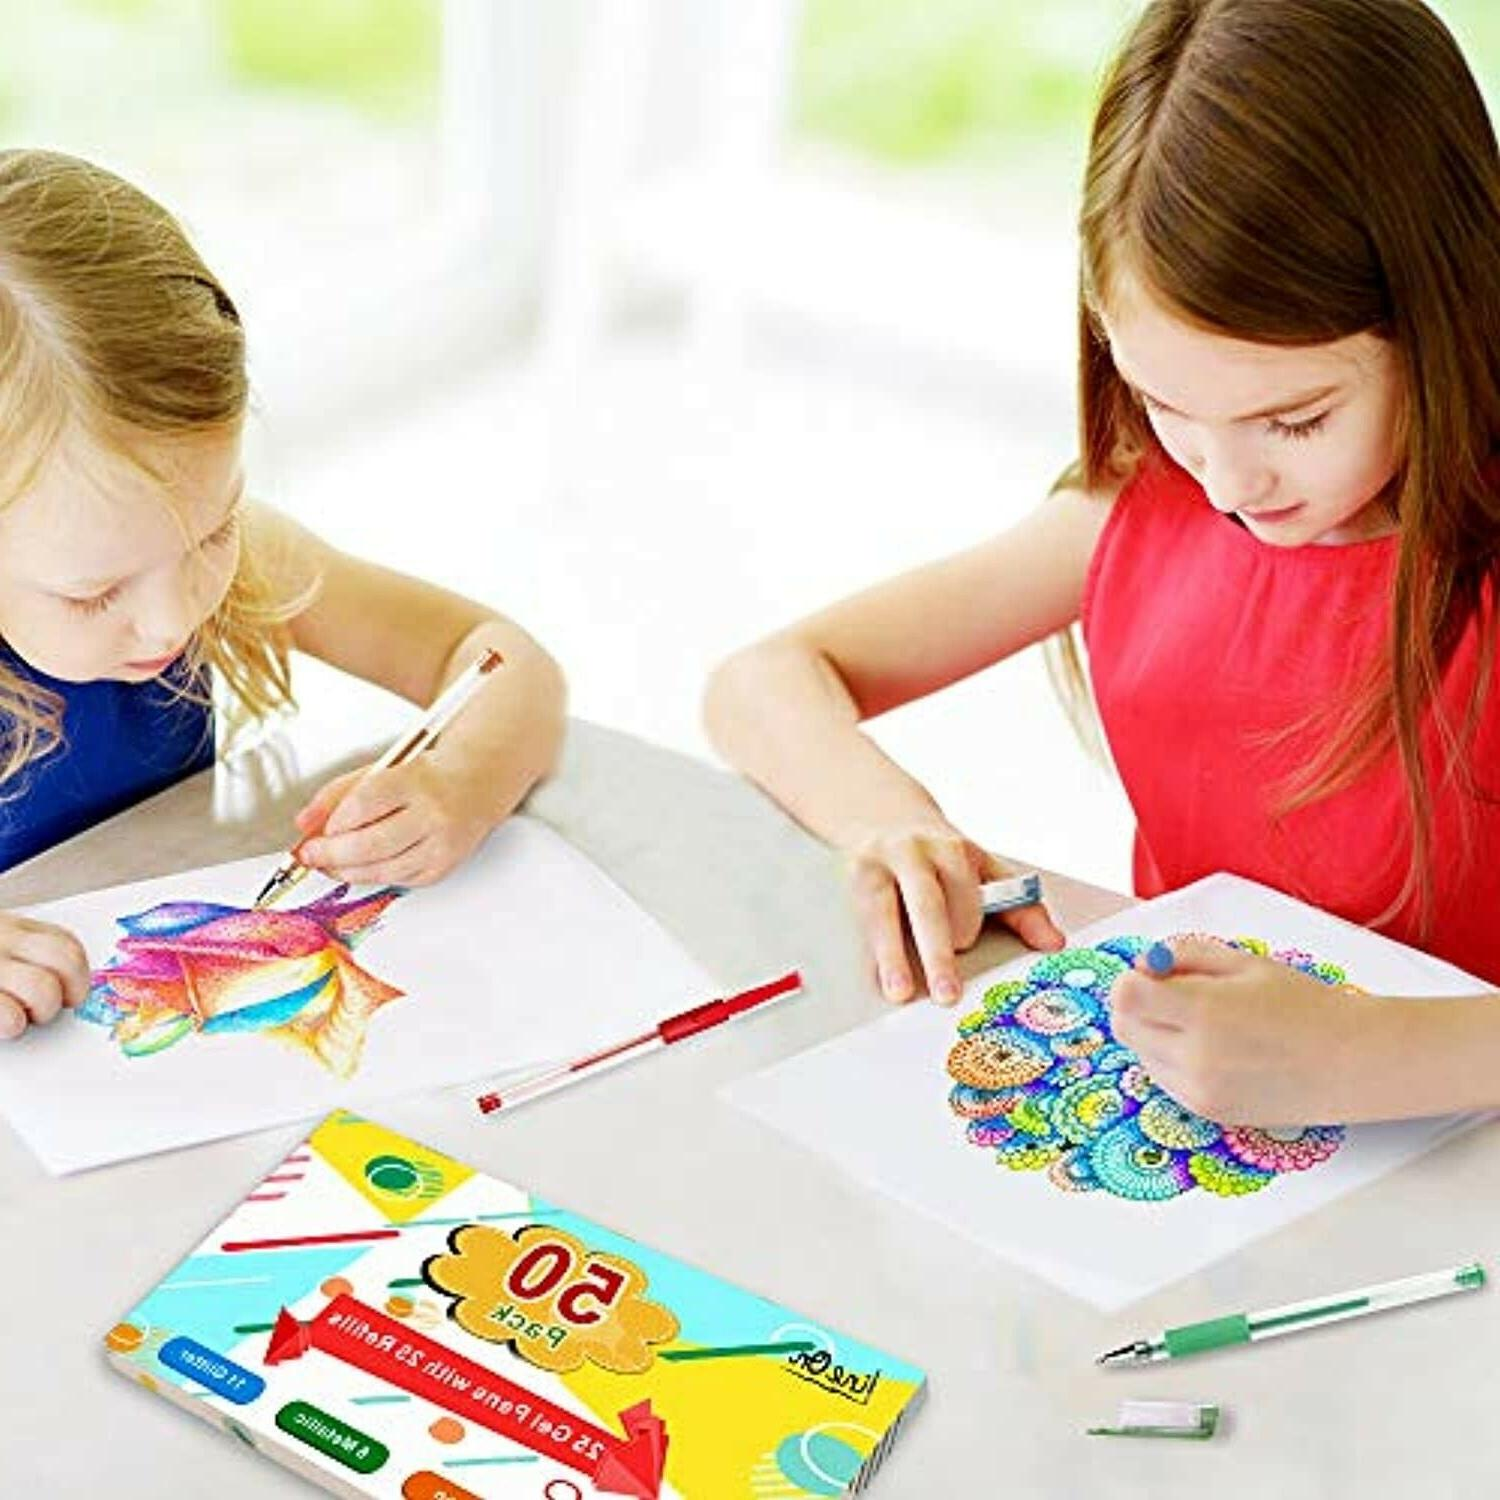 50 Colored Pens Kids Crafting Adult Gift